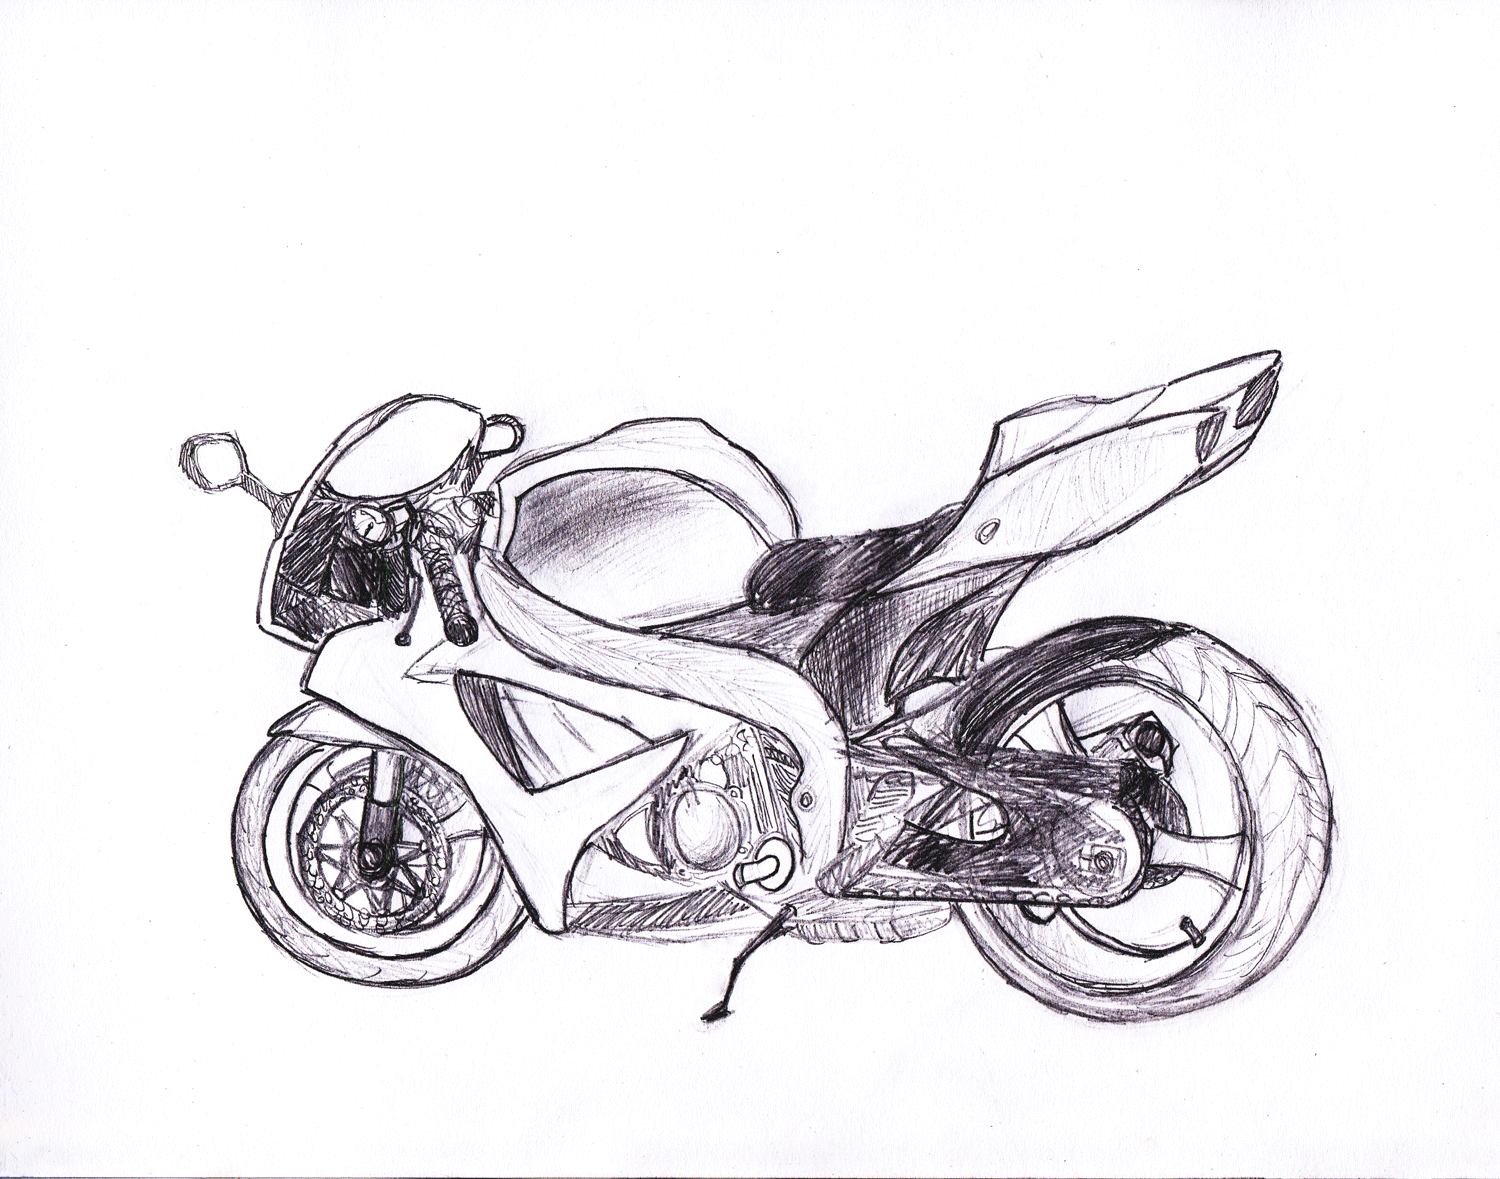 suzuki gsxr 600 by buttcrack06 on deviantart